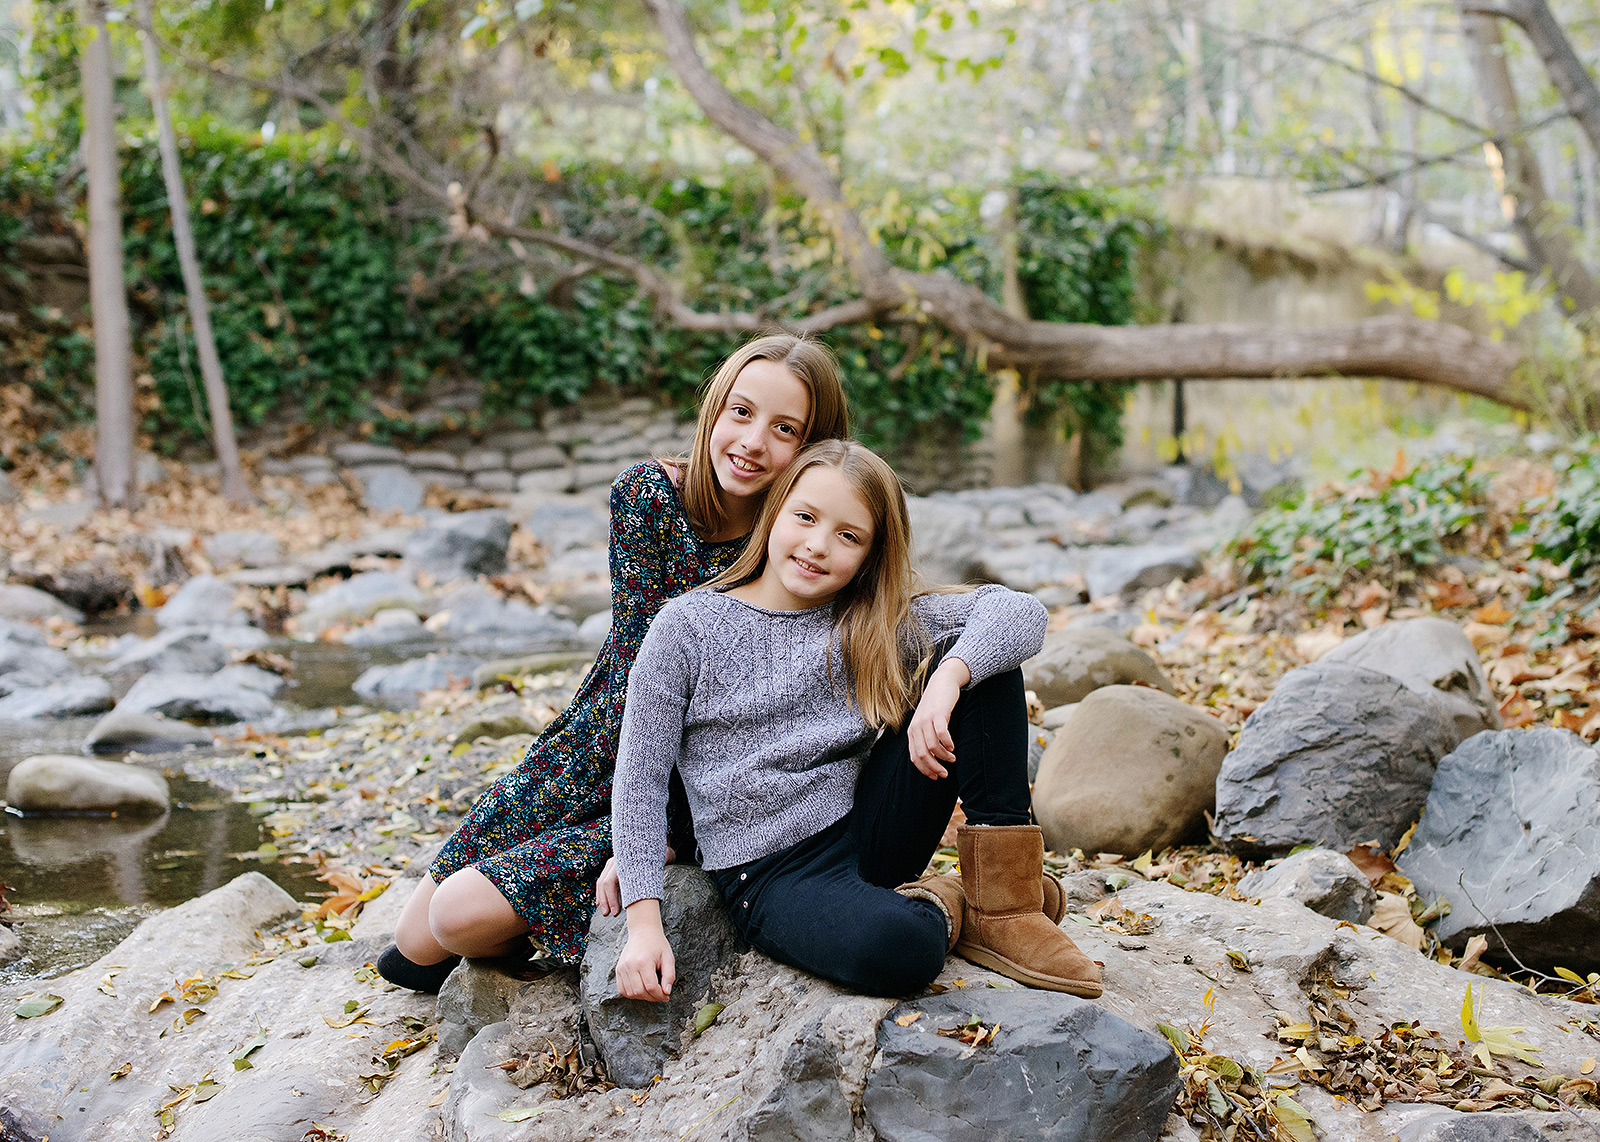 Sisters smiling for the camera on rocks in Saratoga outdoors